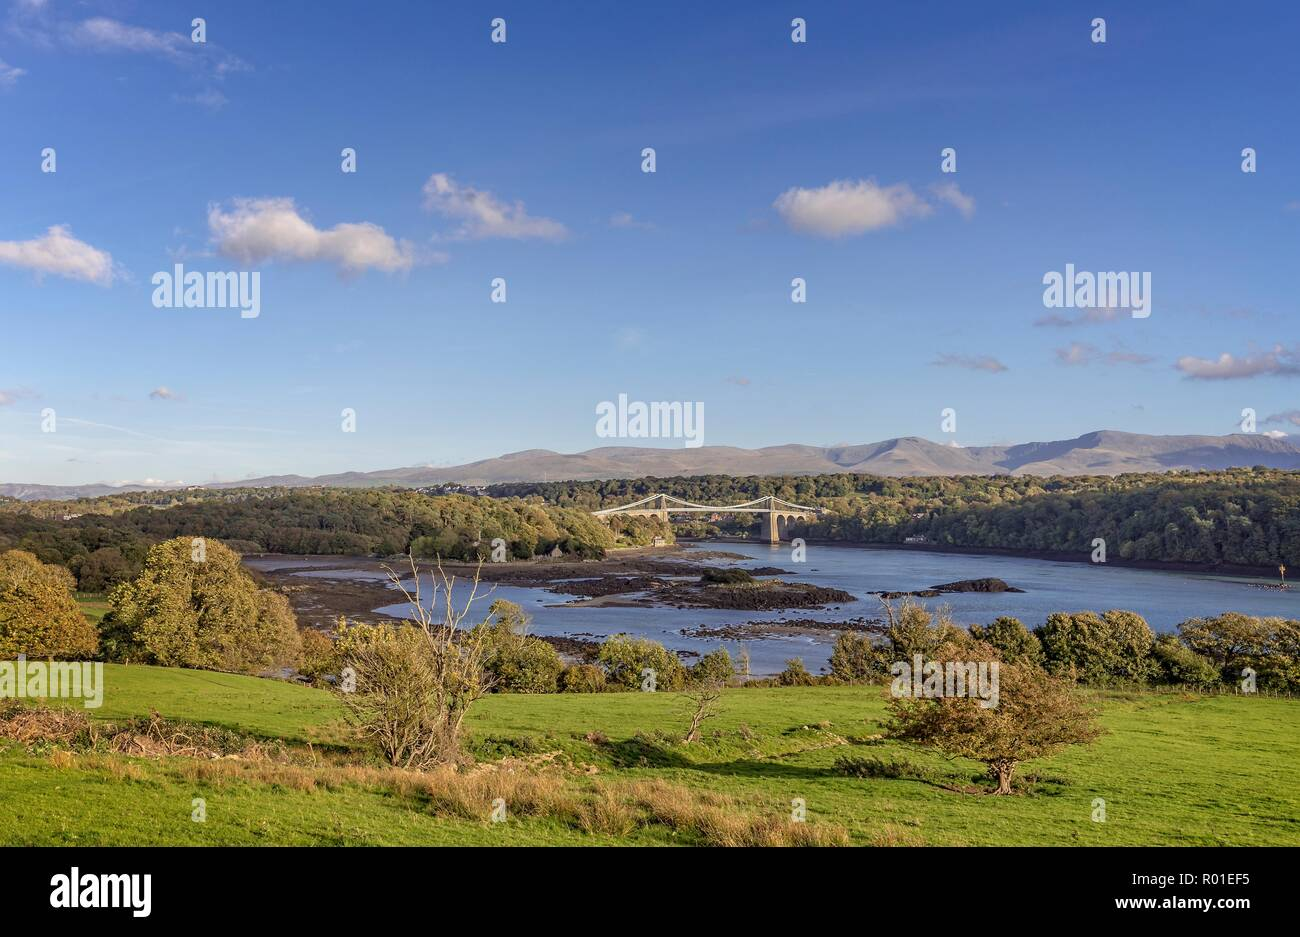 Classic view of the Menai Straits with the Menai Suspension Bridge.  The mountains of Snowdonia are in clear view in the distance. Stock Photo